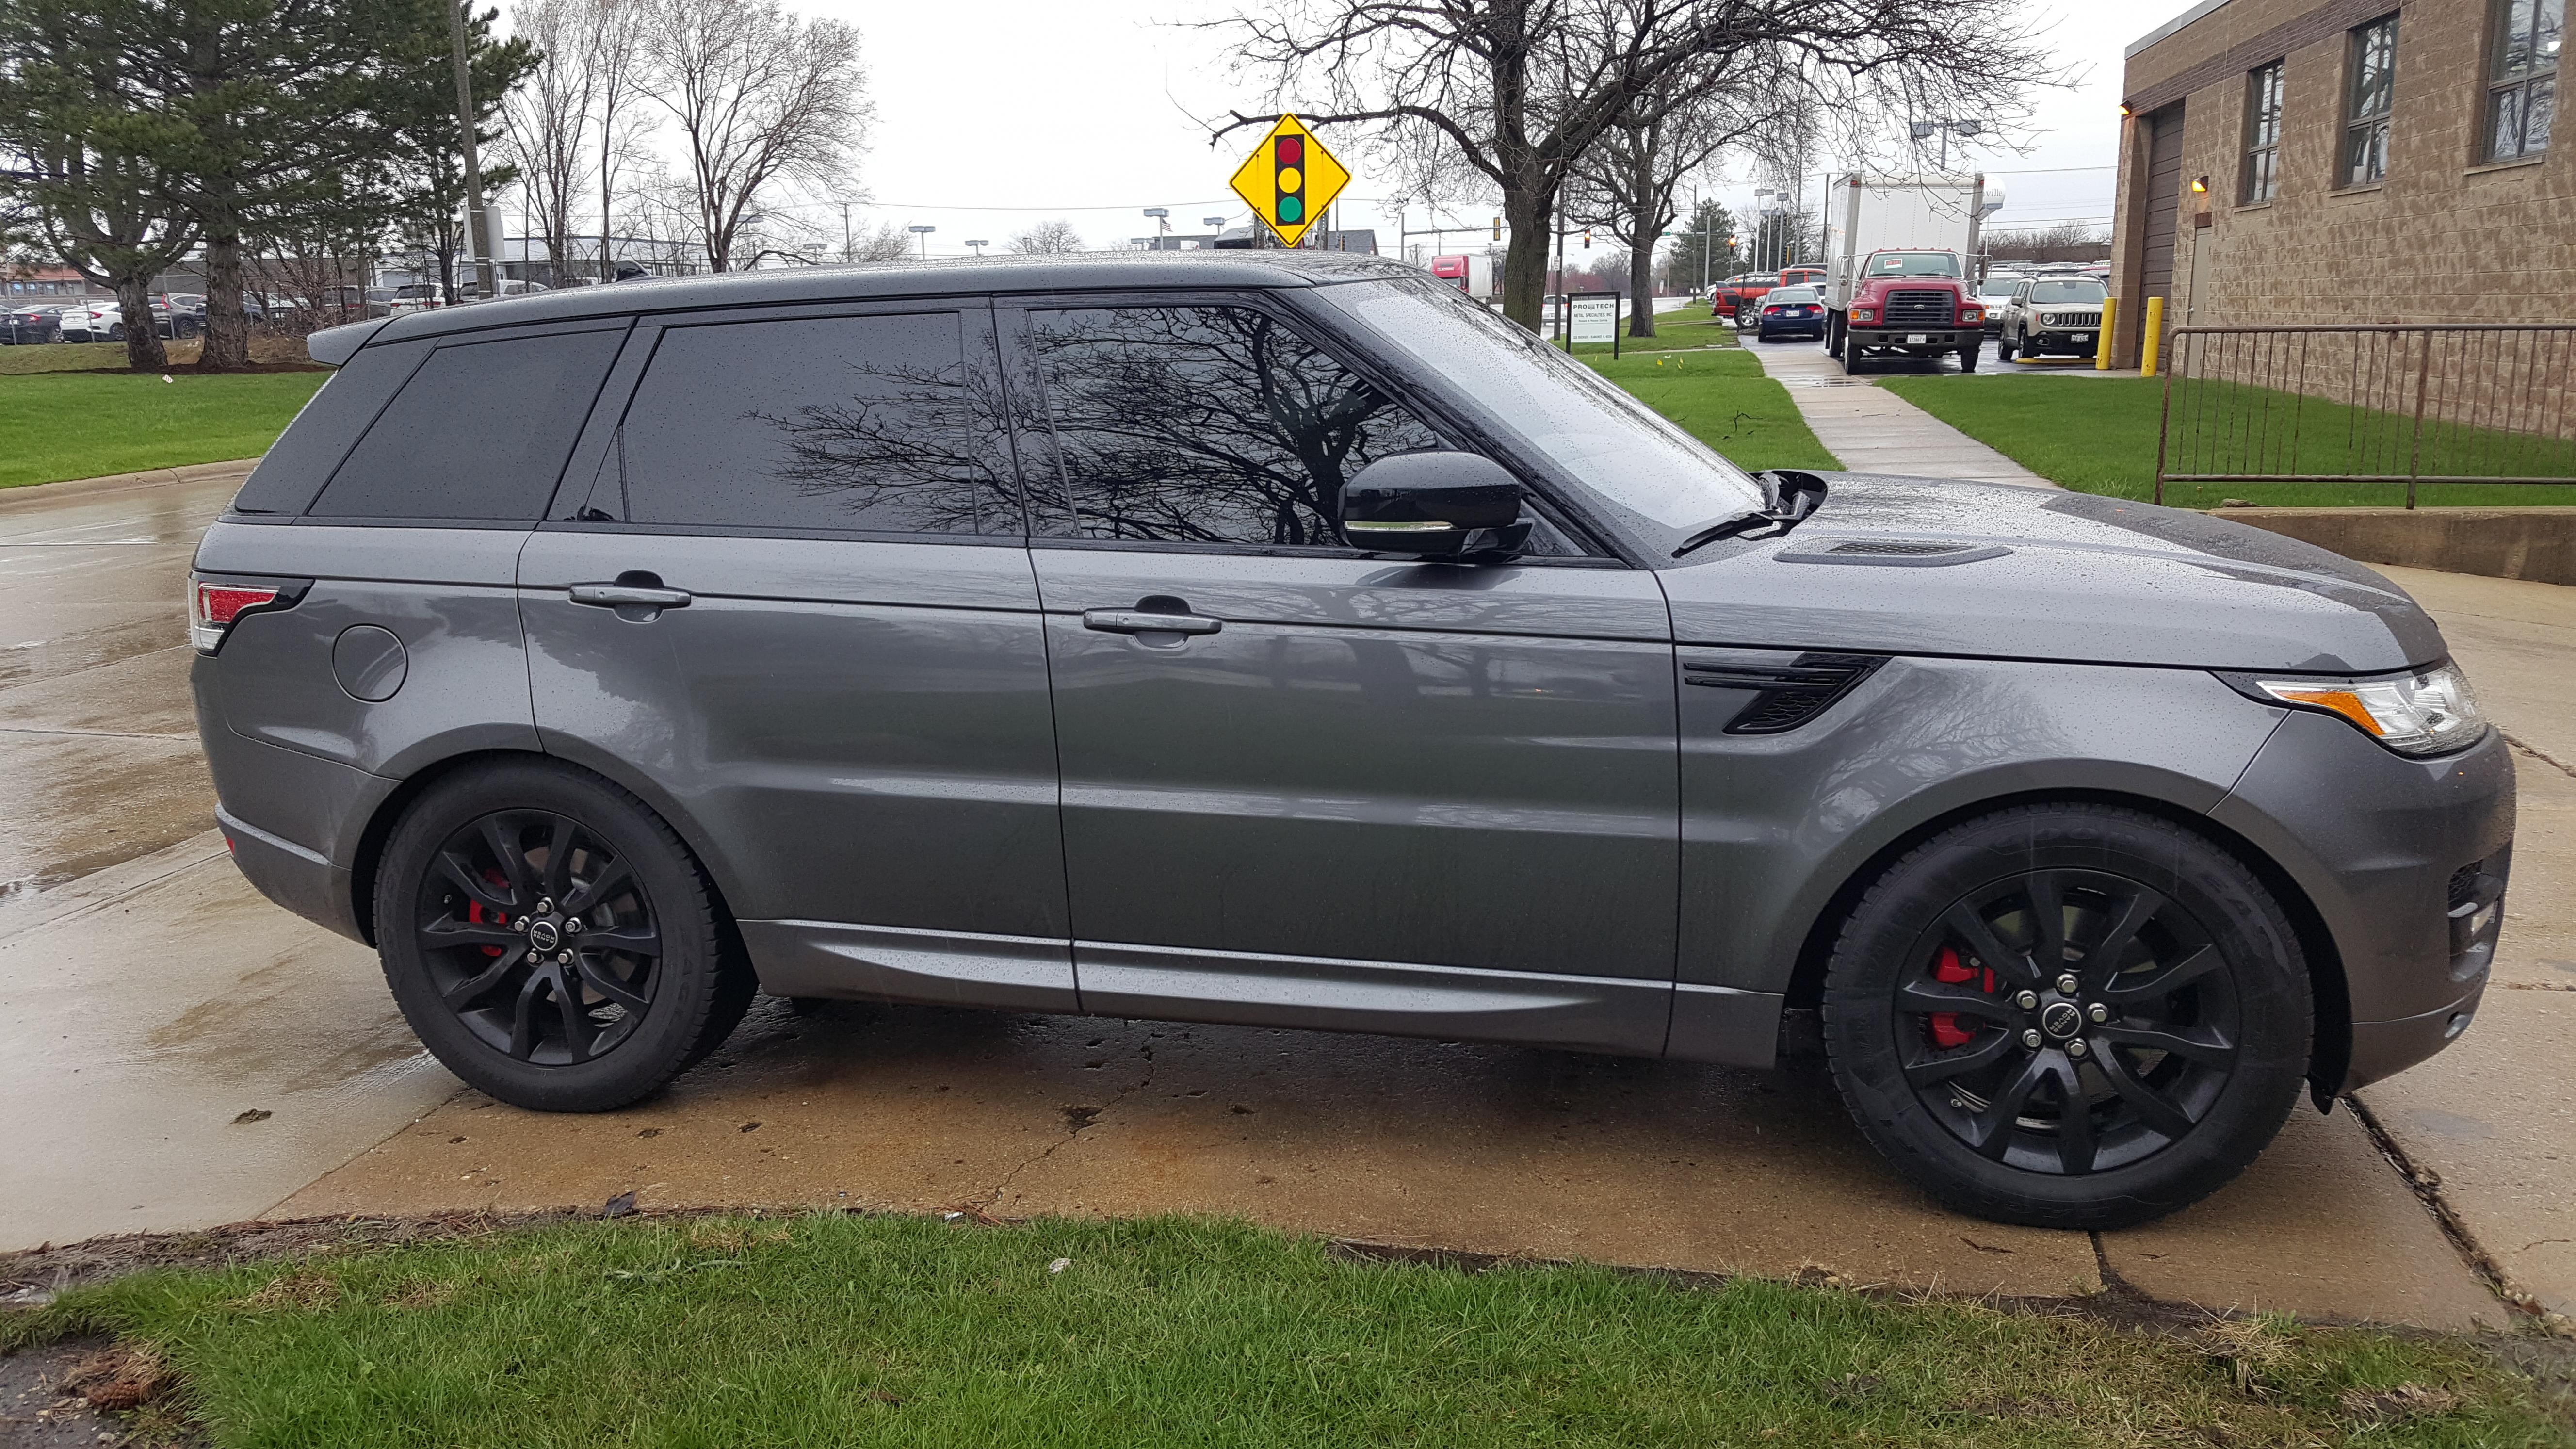 QuickSilver Cat Back Exhaust FOR SALE in Chicago Area Land Rover